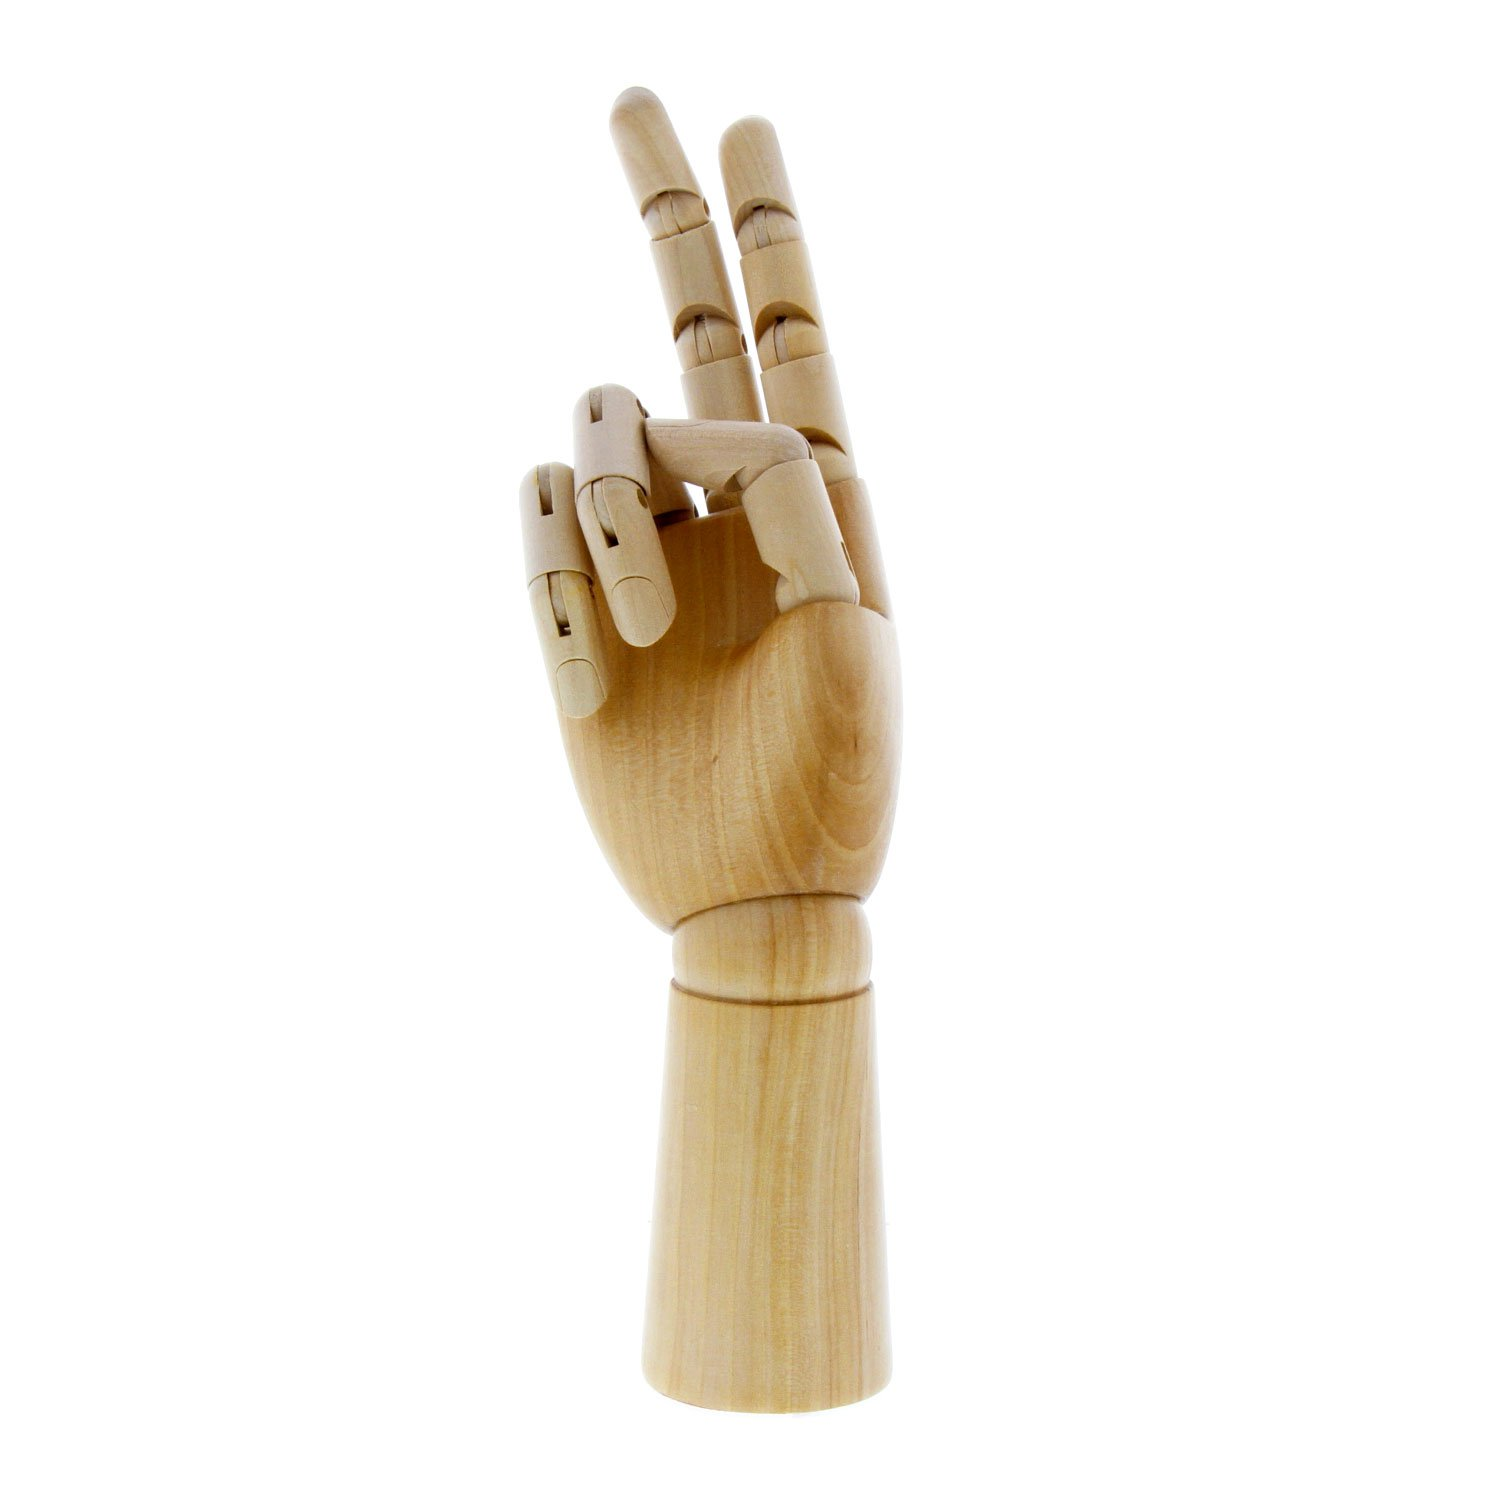 US Art Supply Wood Artist Drawing Manikin Articulated Mannequin with Wooden Flexible Fingers - Perfect for drawing the human hand (12 Right Hand) 4336946134